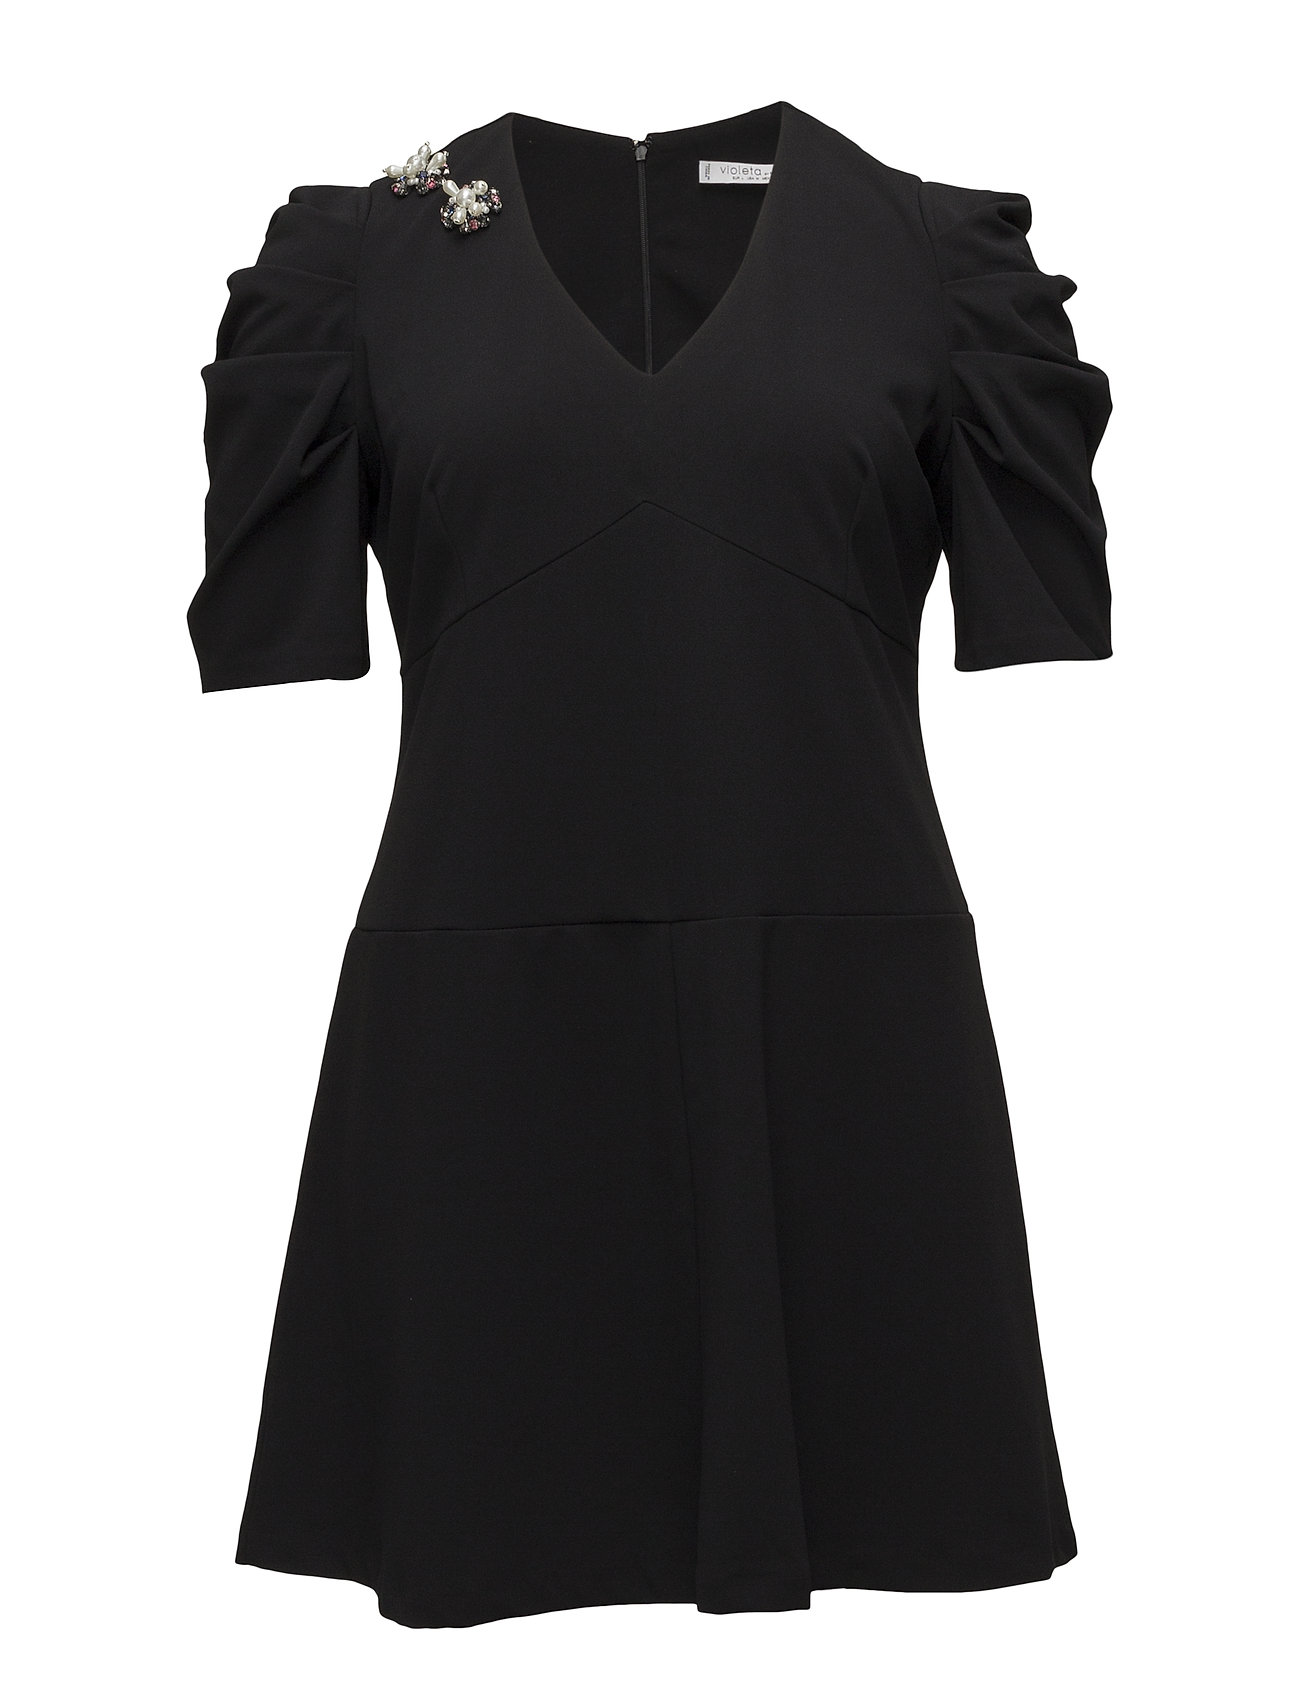 Image of Appliqus Puffed Sleeves Dress (3067542659)